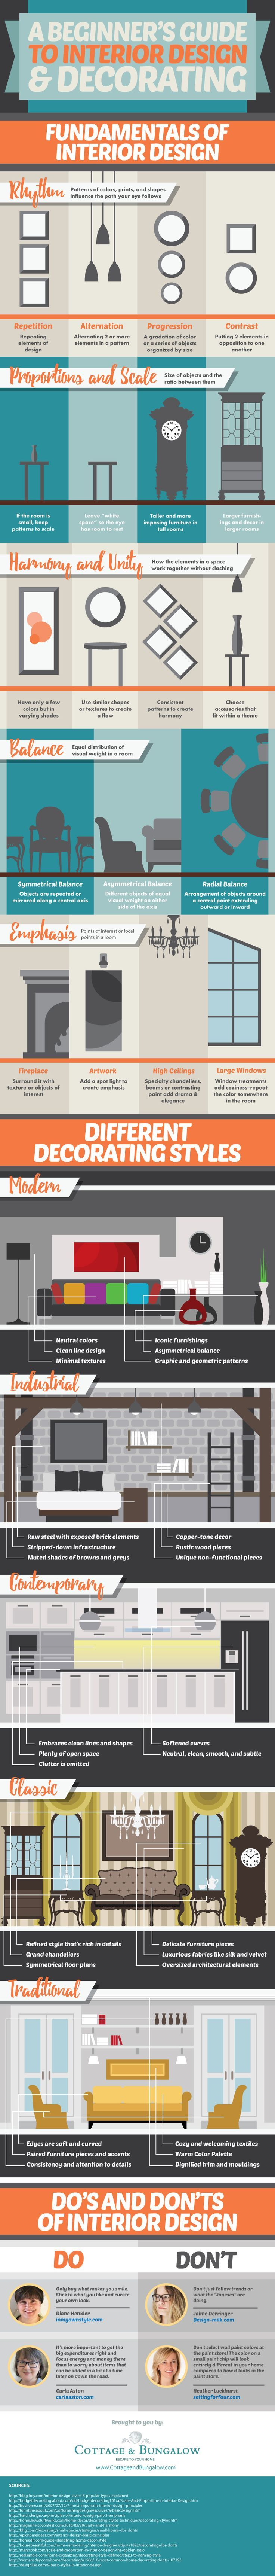 The 25+ Best Interior Design Ideas On Pinterest | Copper Decor, Kitchen  Inspiration And Home Tiles